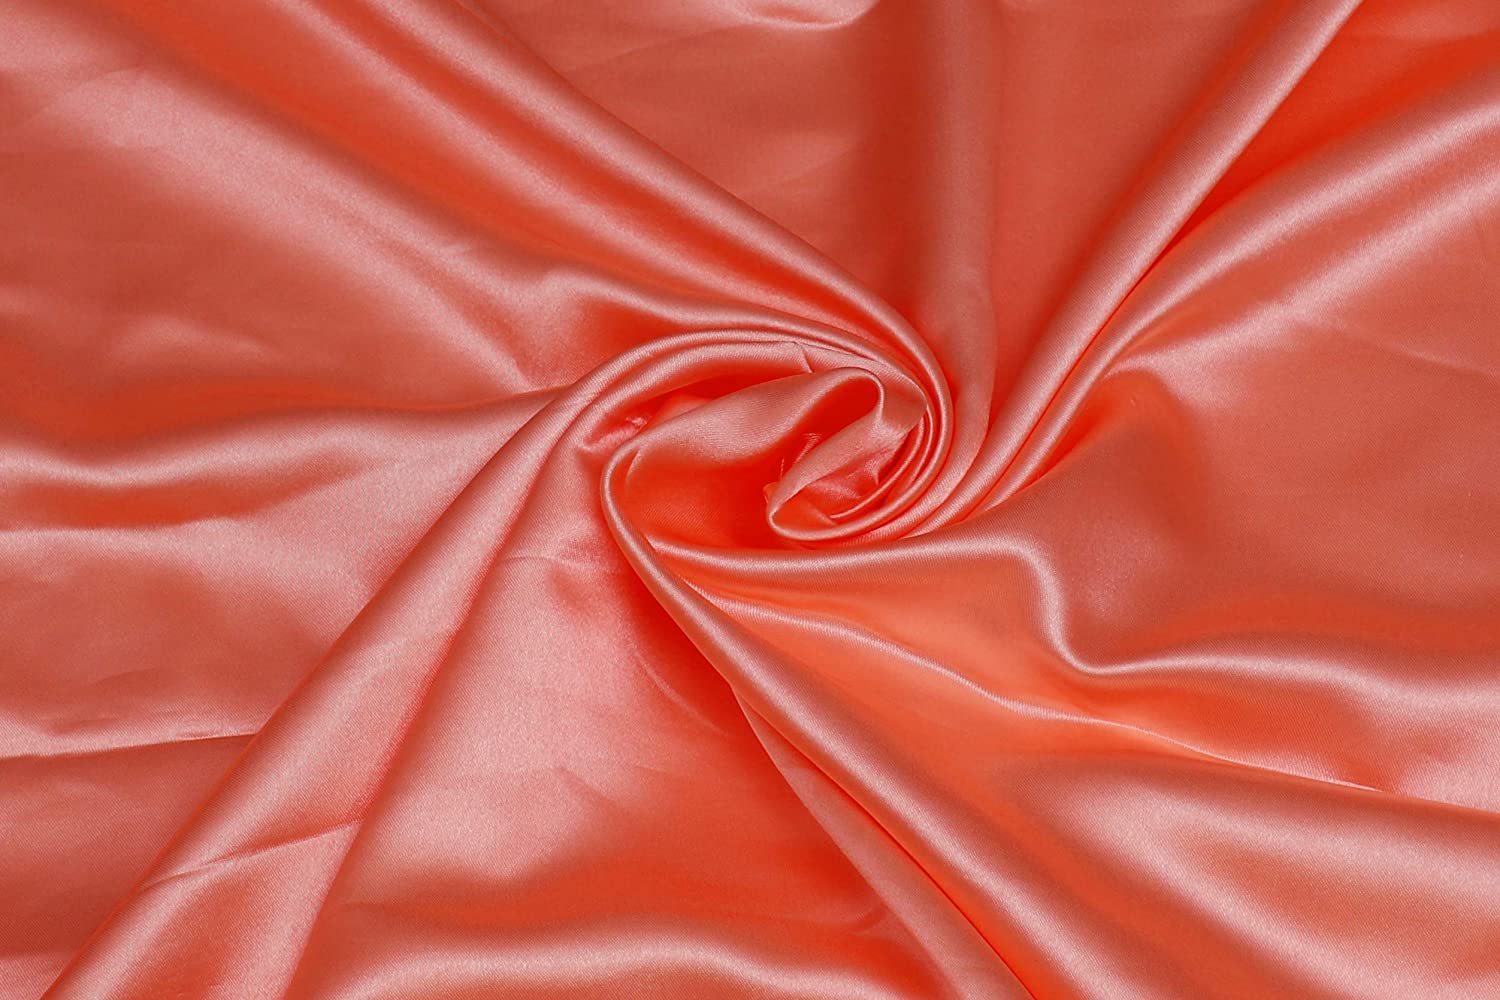 VINEX Bridal Lightweight Satin Fabric Wide Soft Fabric for Dress Voile Crafts Fashion Items Wedding Gowns and Party Decoration 5 Yard 44 inch Wide Peach